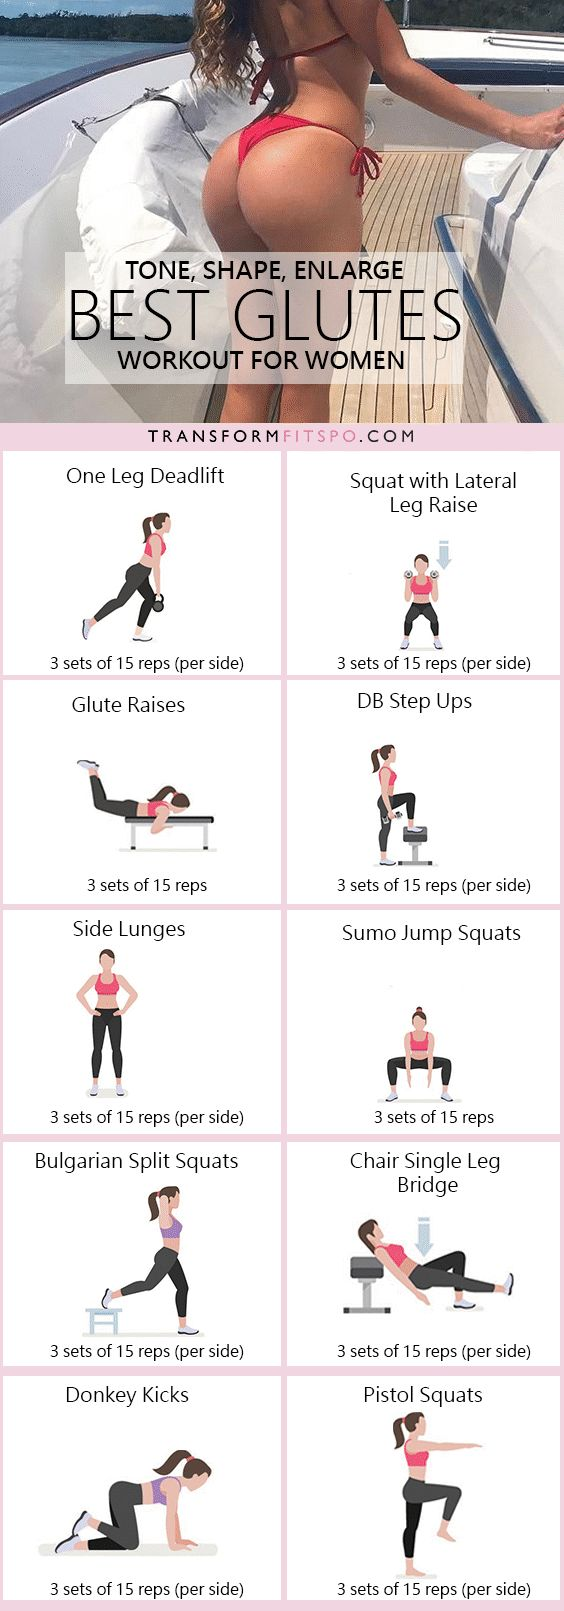 These are the BEST Butt workouts at home!! Glad to have found these amazing butt exercises for my routine. Definitely pinning.